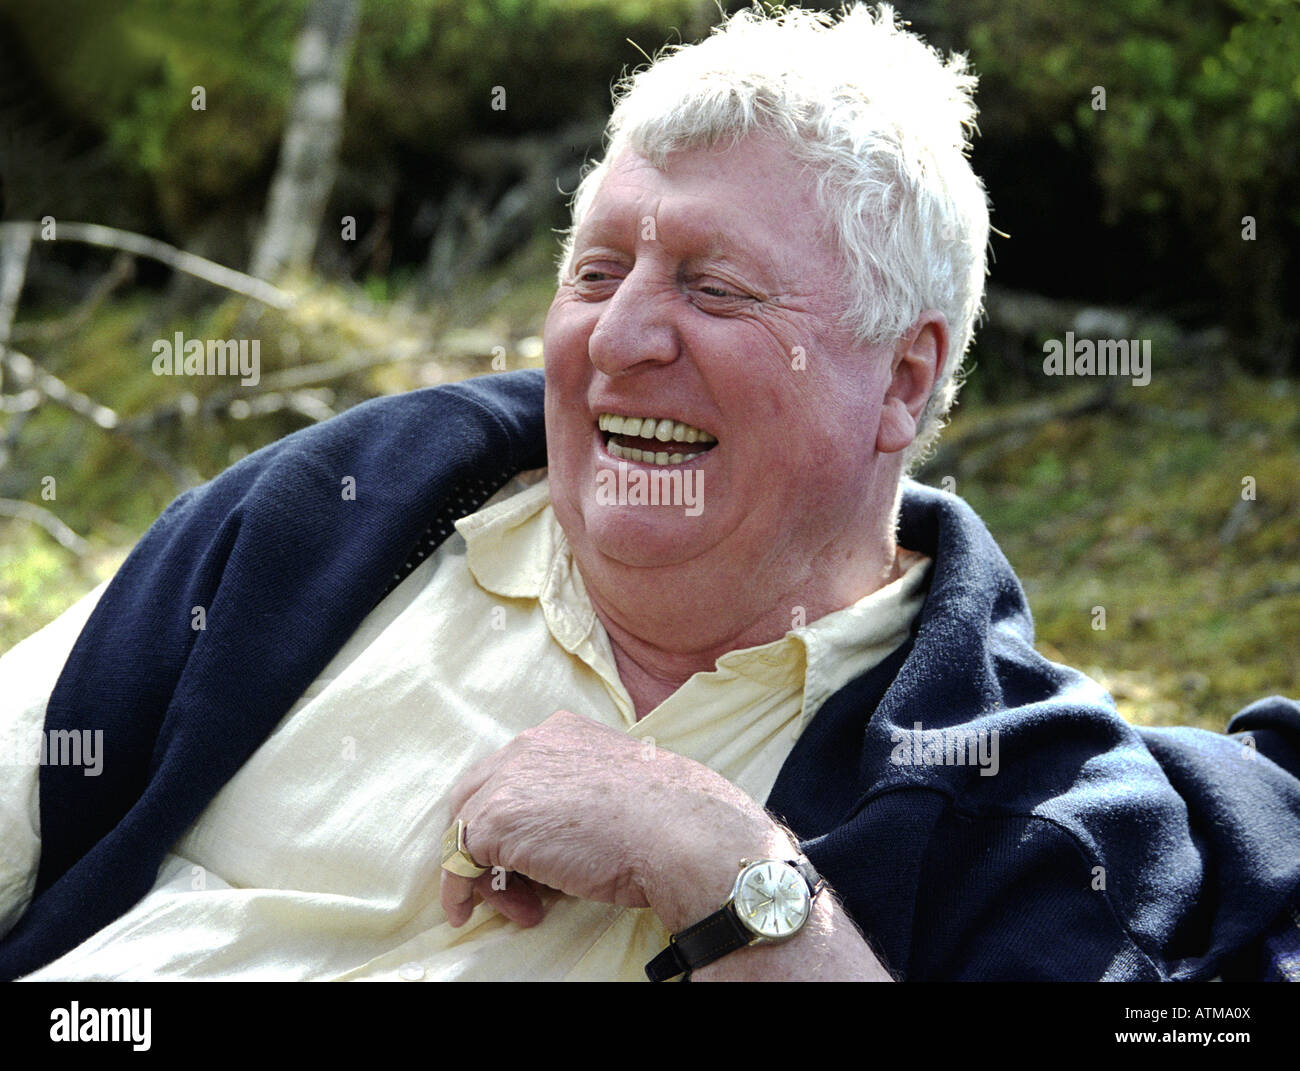 Tom Baker British actor best known as Dr Who on television - Stock Image